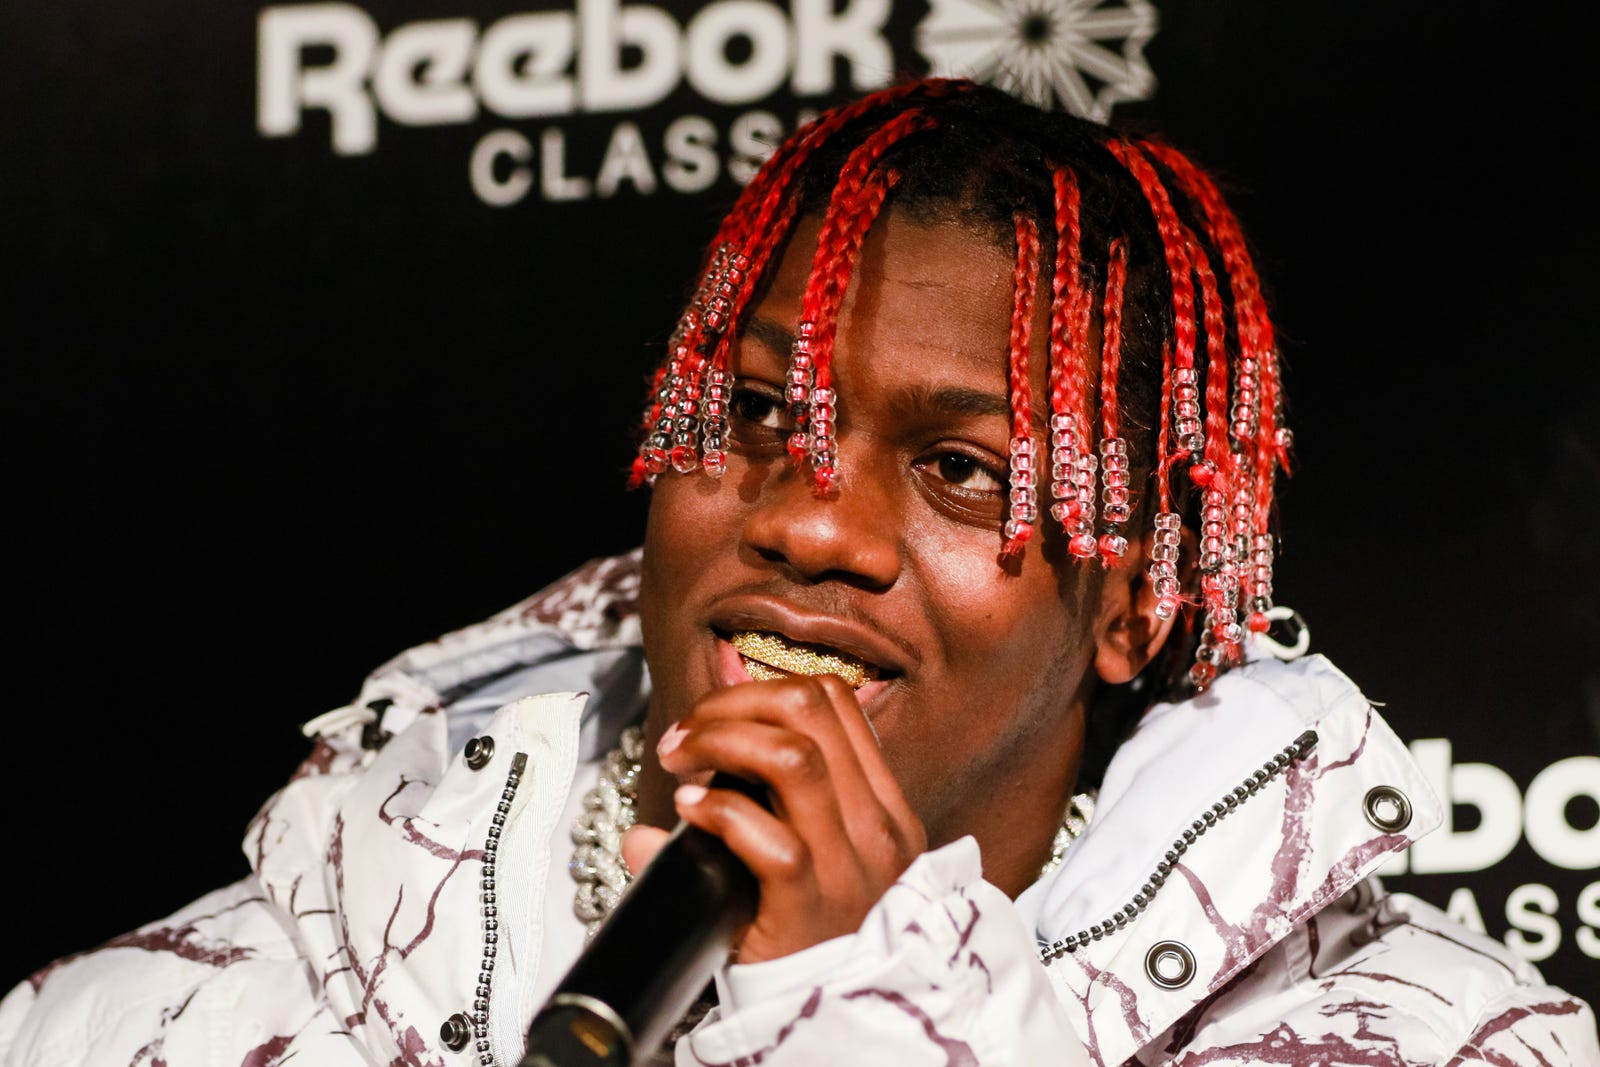 Lil Yachty (courtesy of Reebok/Hope Calnan)